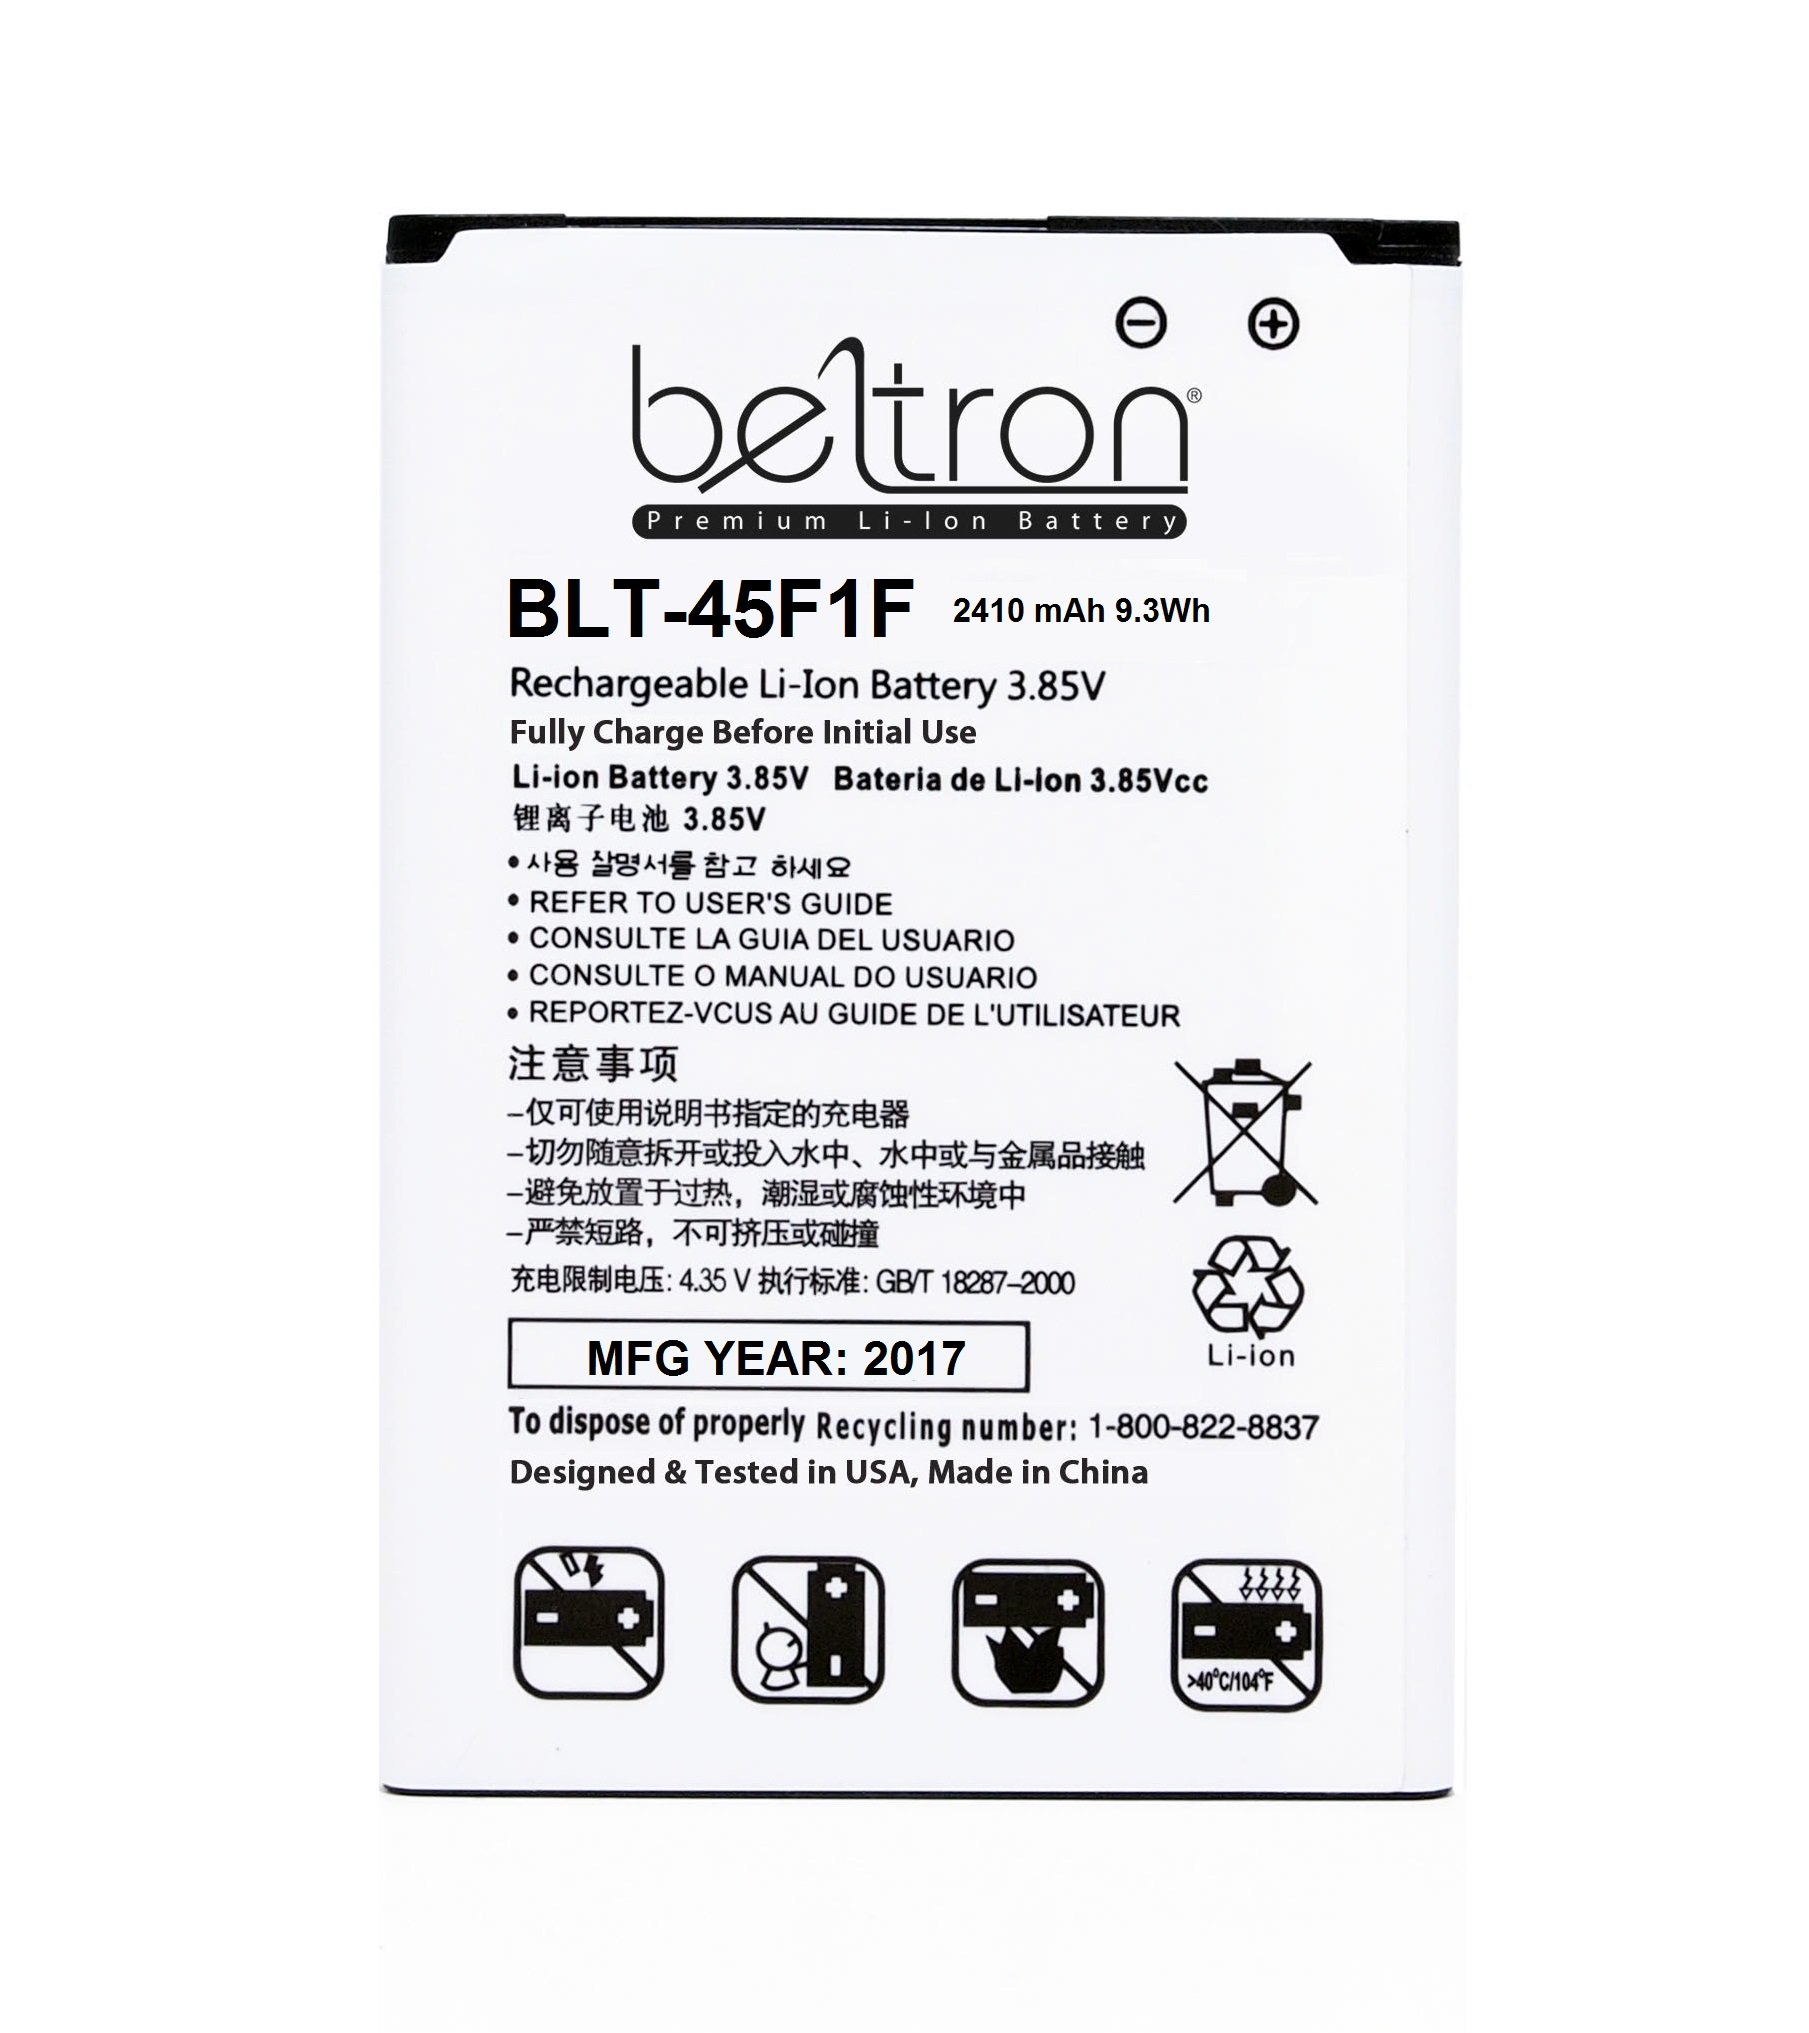 New 2410 mAh BELTRON Replacement Battery for LG LV3 / Aristo MS210 (Metro PCS & T-Mobile) BL-45F1F